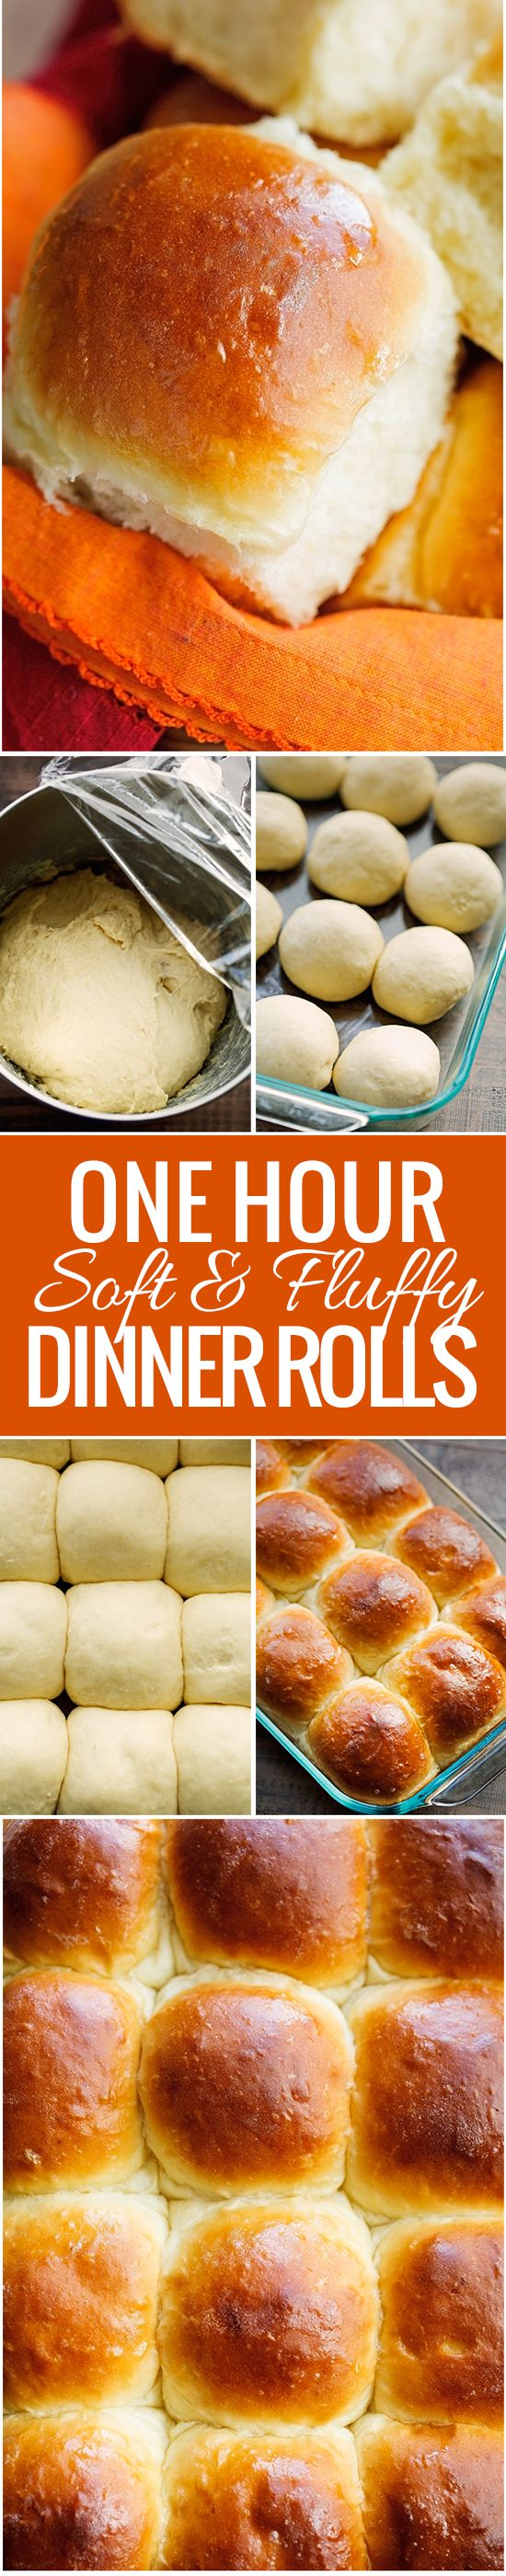 Soft and Fluffy One Hour Dinner Rolls Recipe - made with potato flakes and ready in one hour! So tender and delicious! #onehourrolls #dinnerrolls #onehourdinnerrolls | littlespicejar.com @littlespicejar